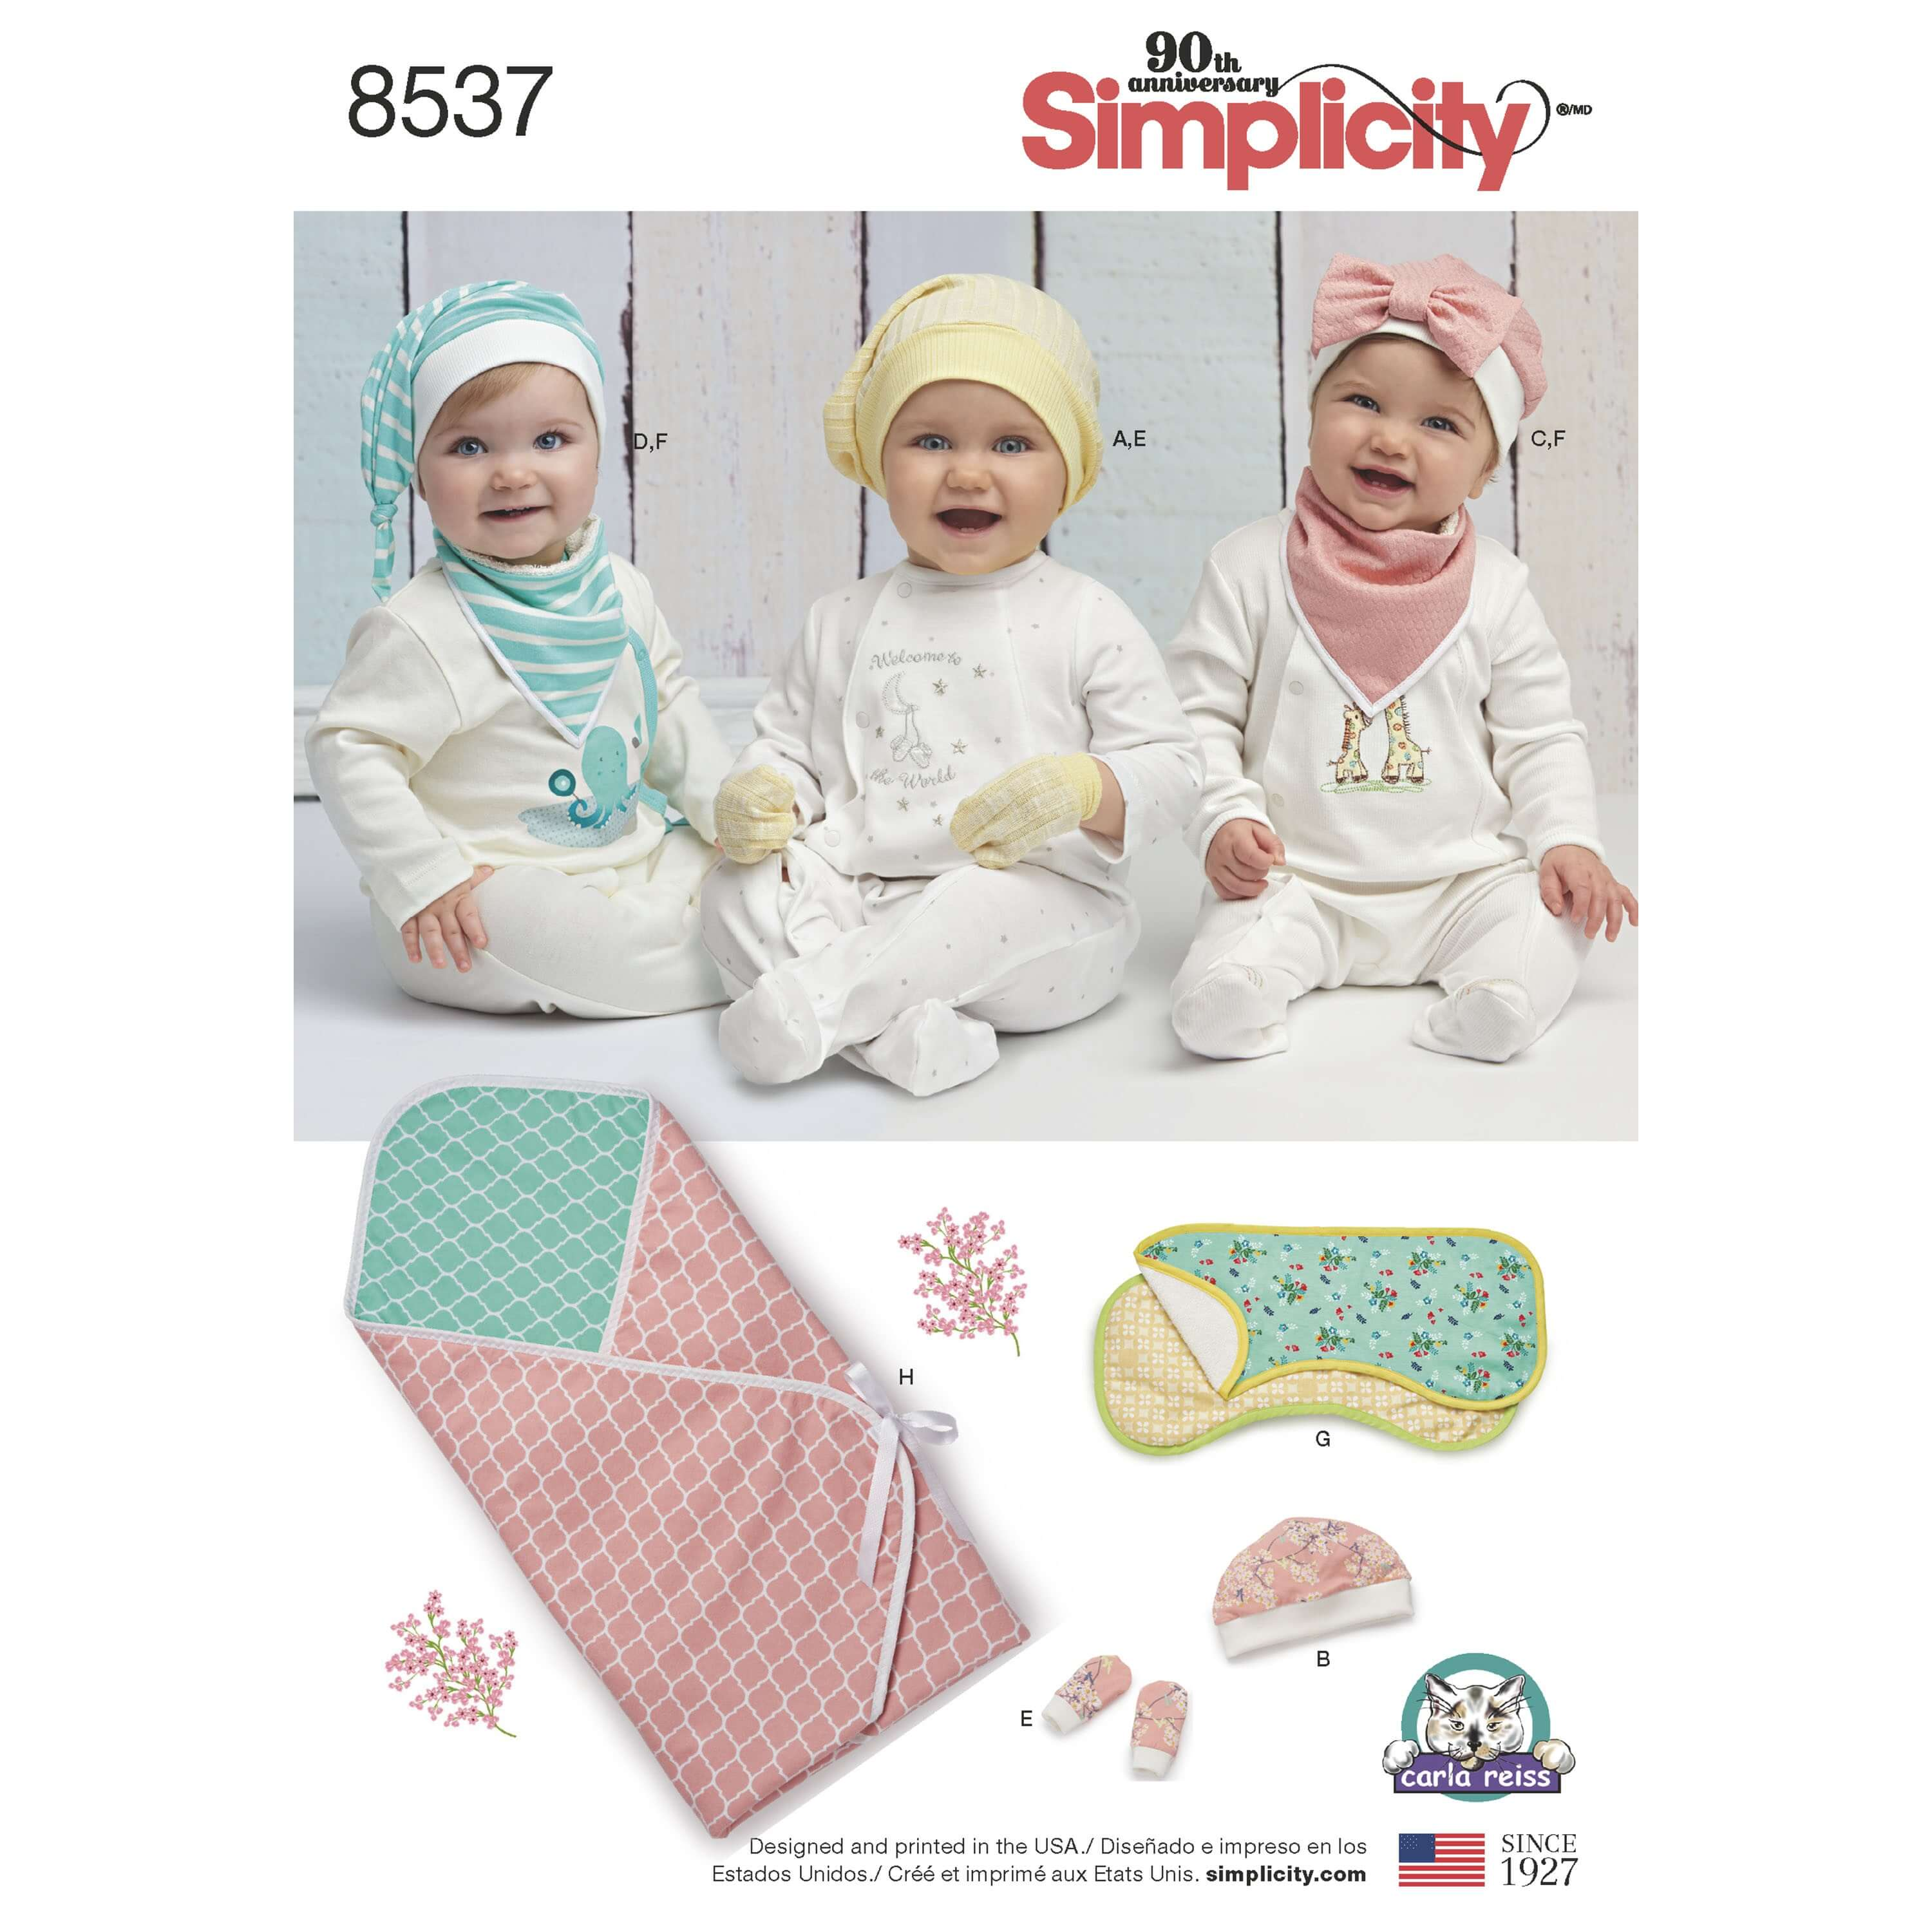 Simplicity Sewing Pattern 8537 Baby Accessories for Cold Weather Hats Blankets